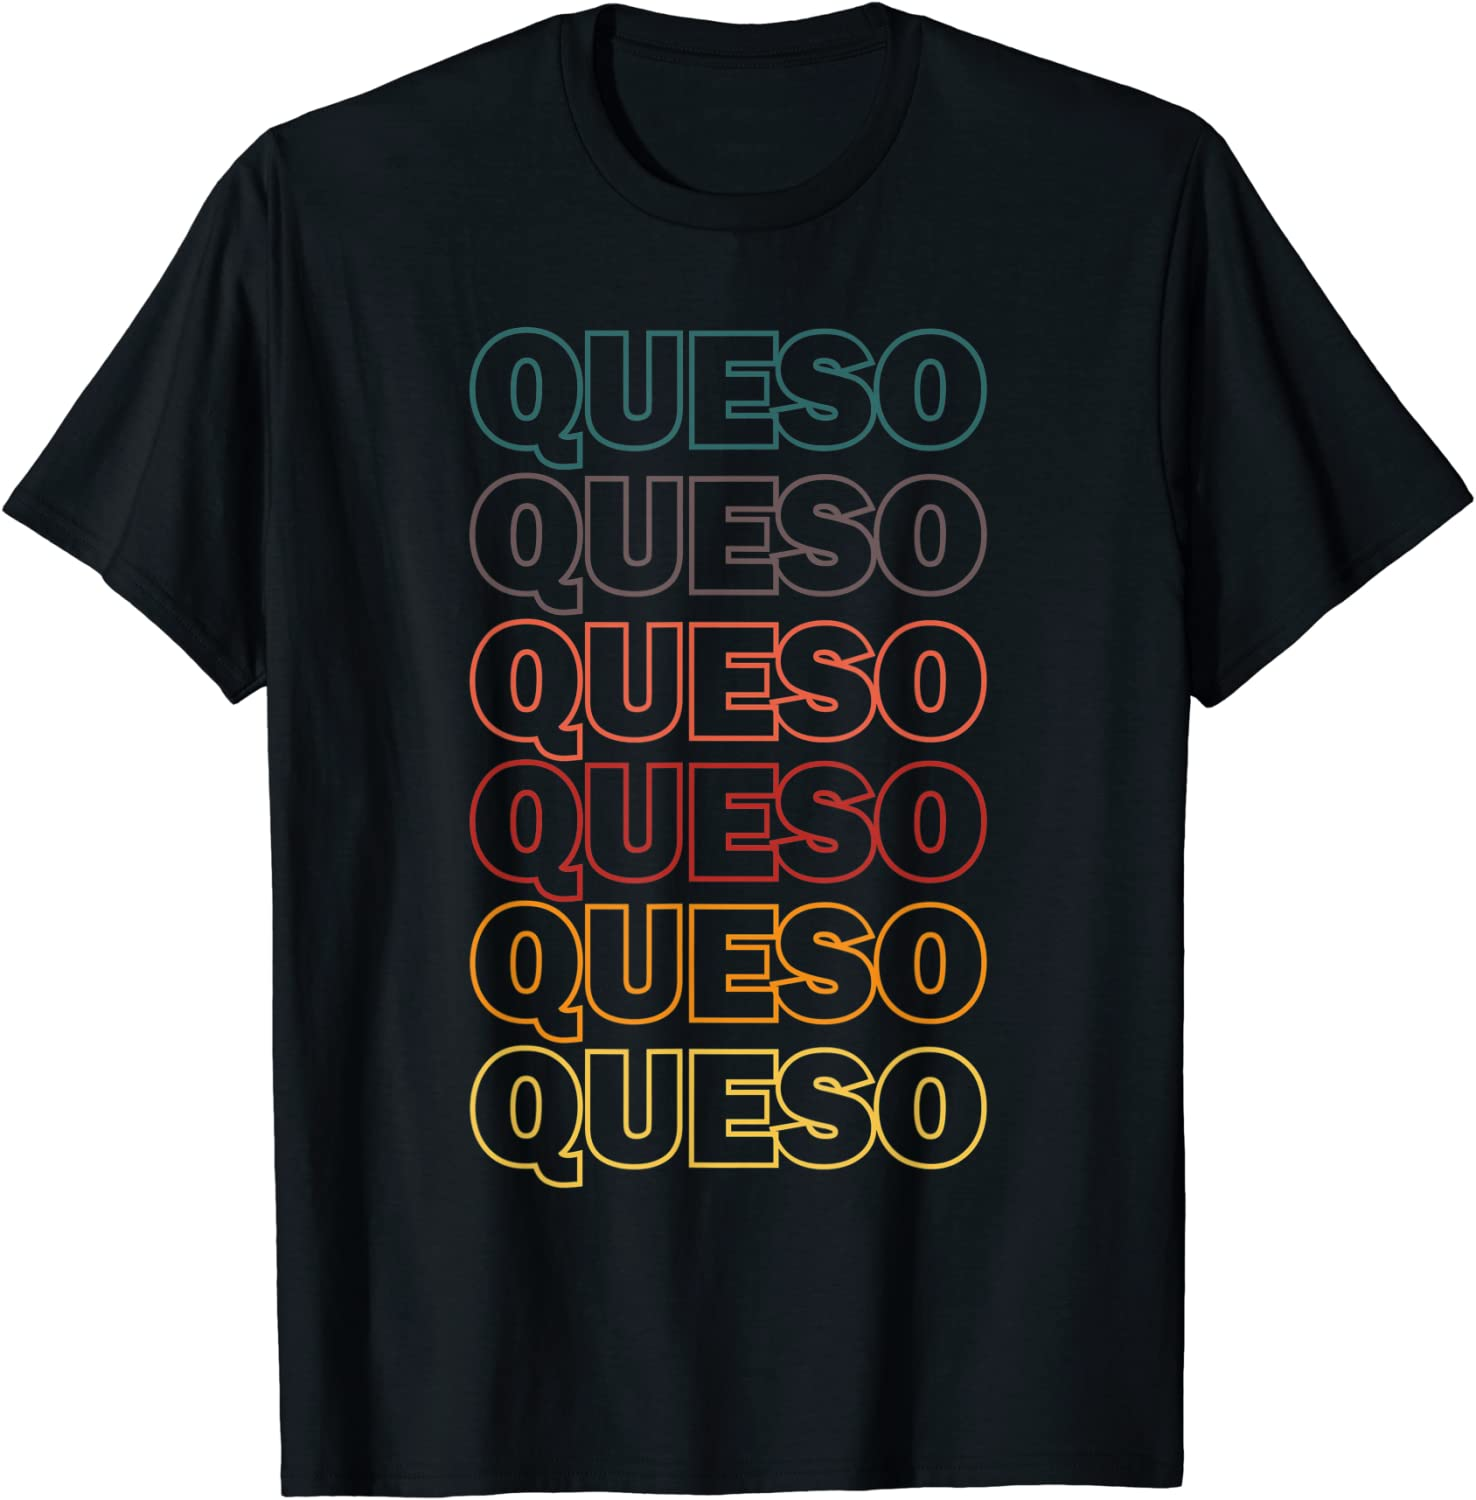 Queso Mexico Appetizer From Fresh Cheese For Food Lover T-Shirt